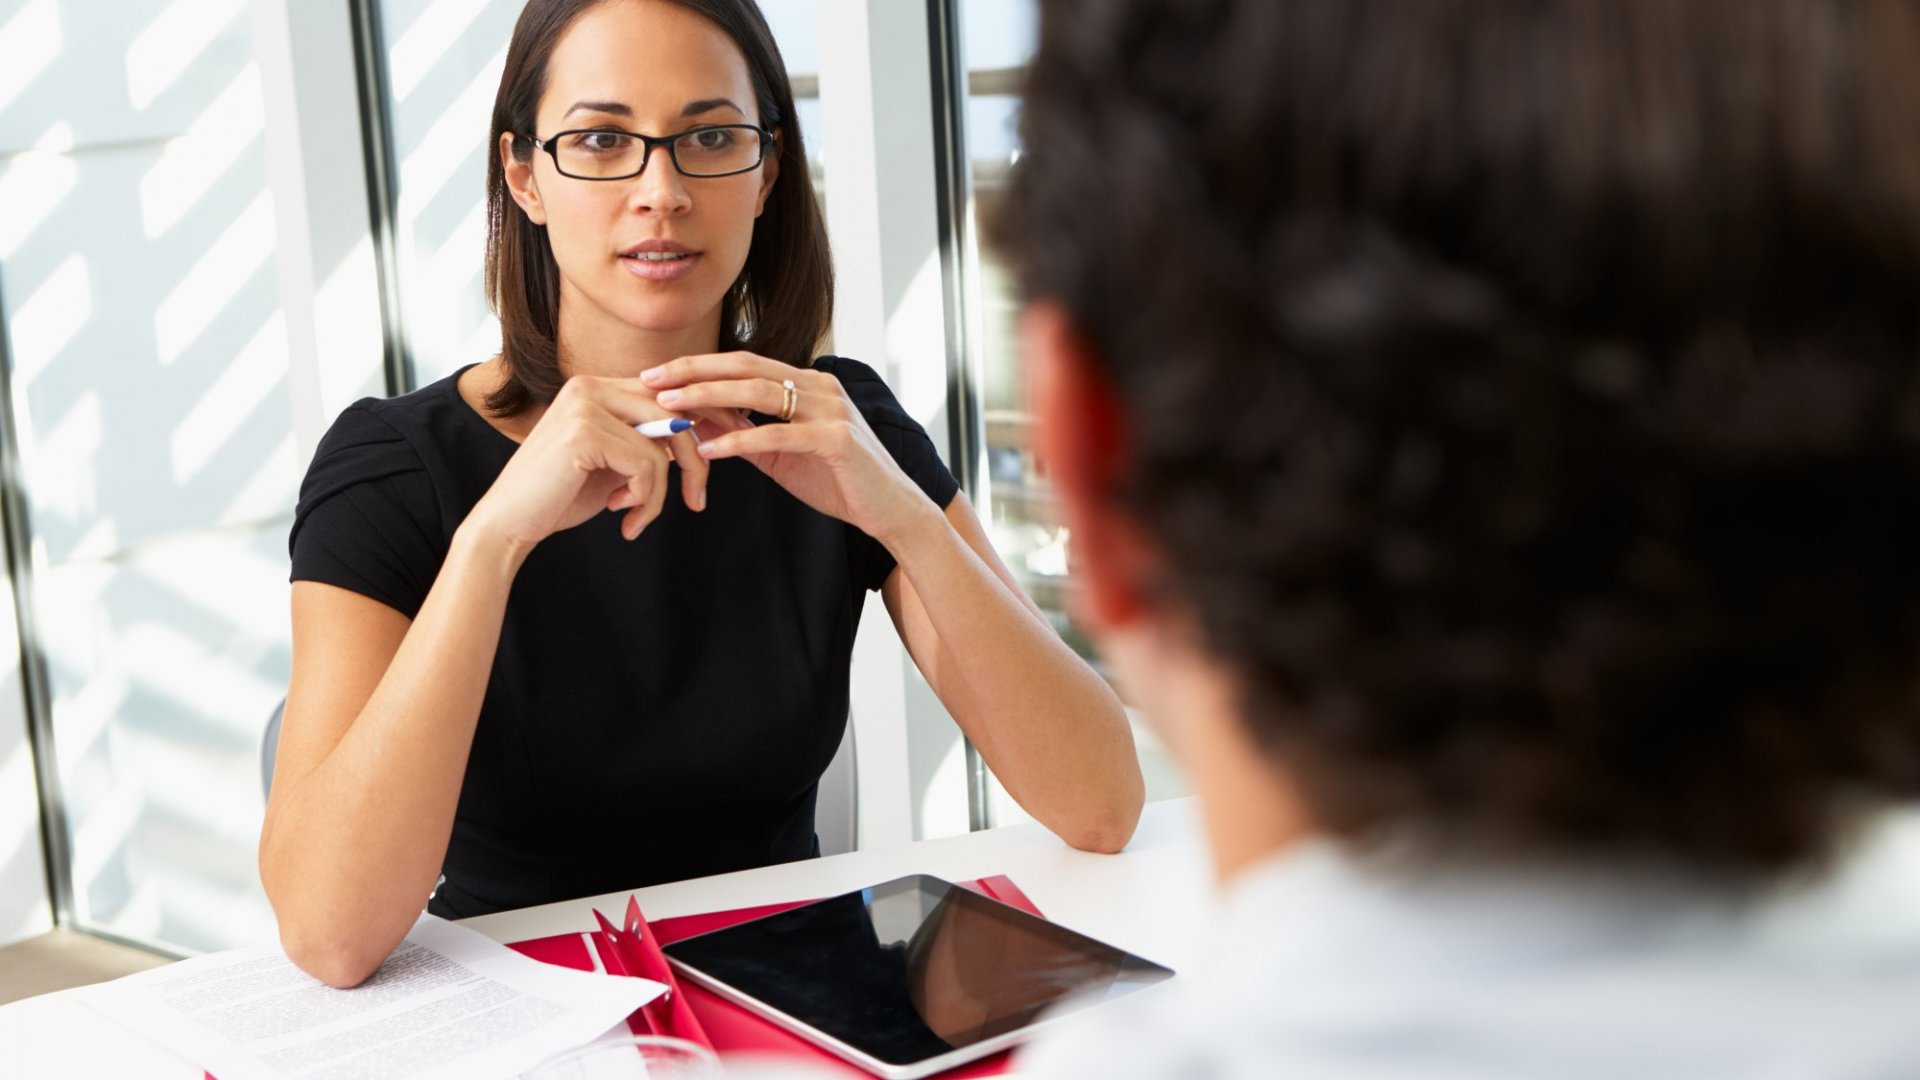 Can You Ask About Mental Health When Hiring?